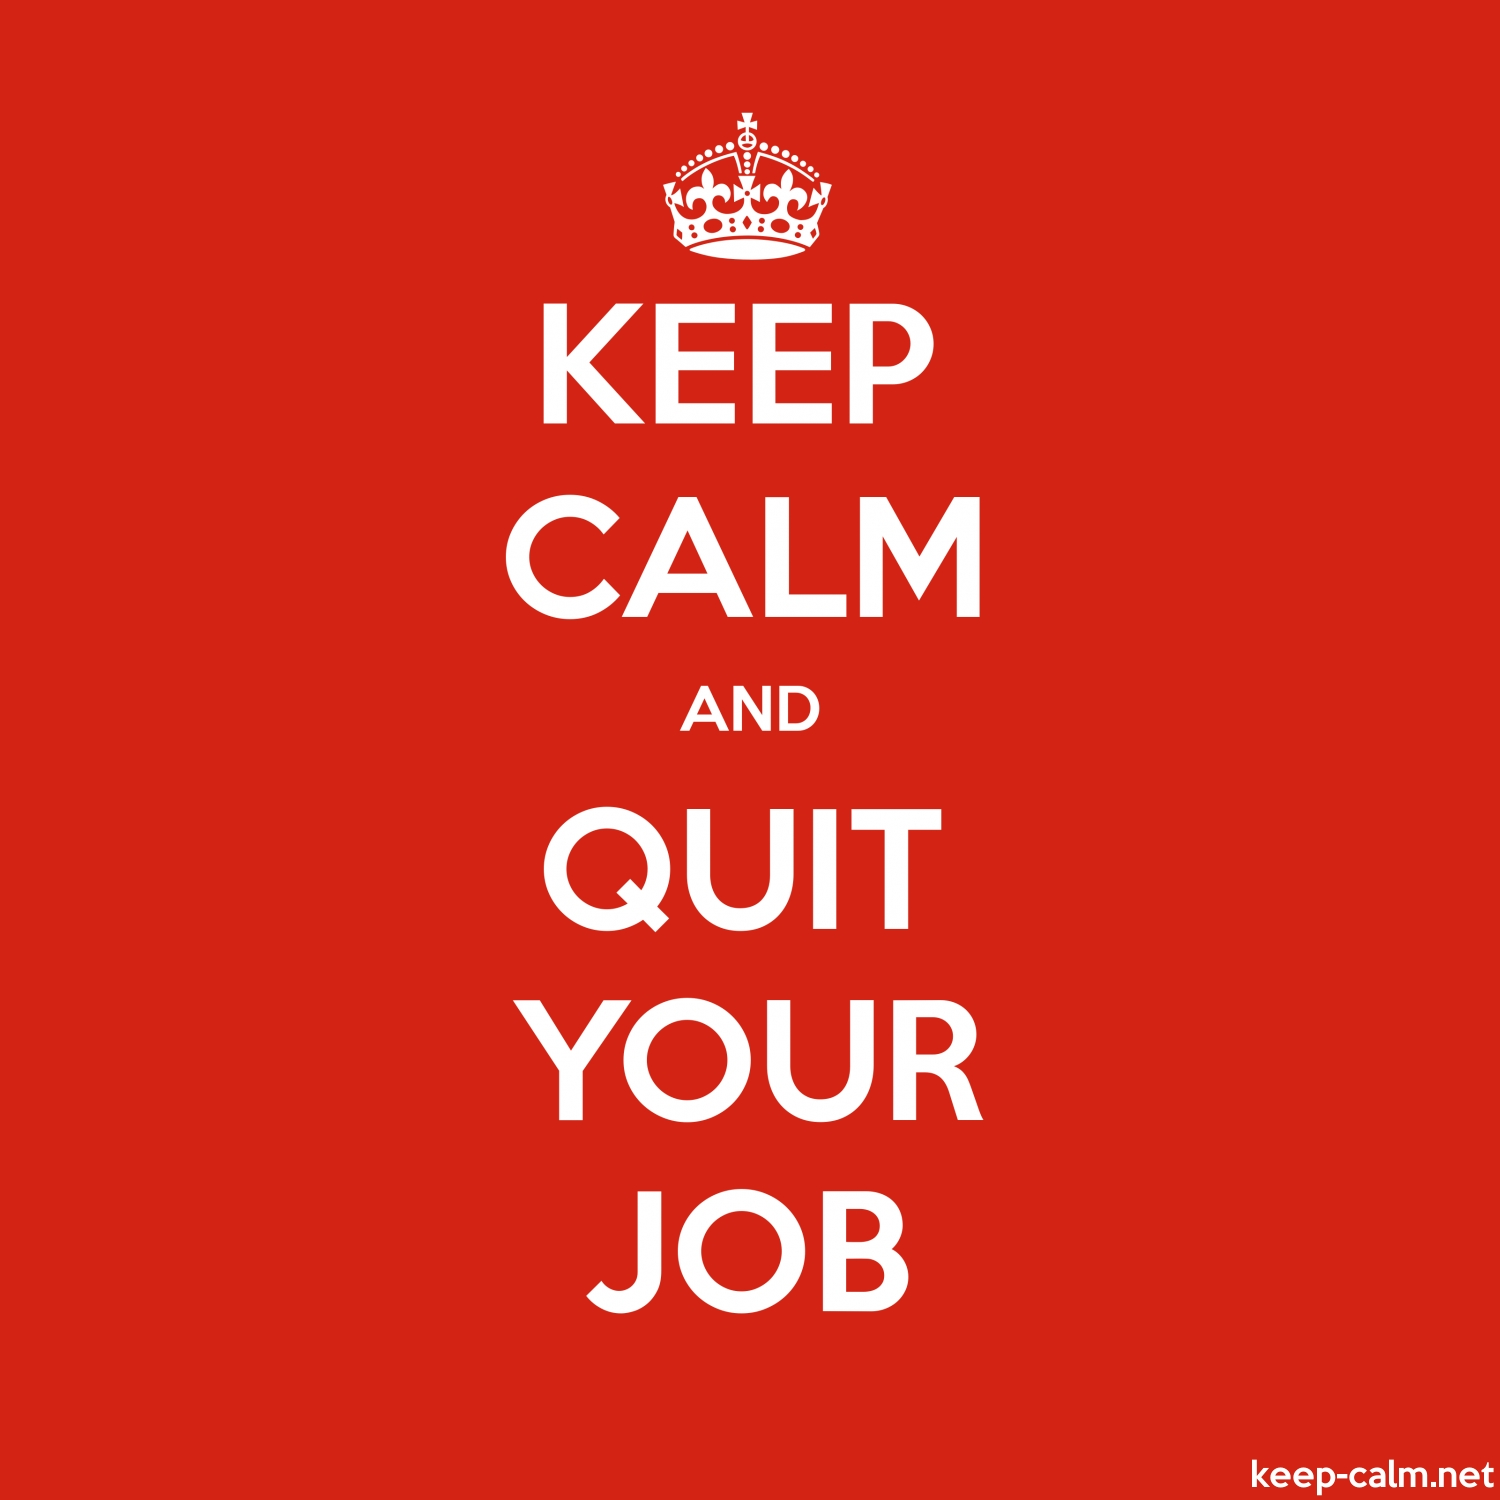 keep calm and quit your job keep calm net embed